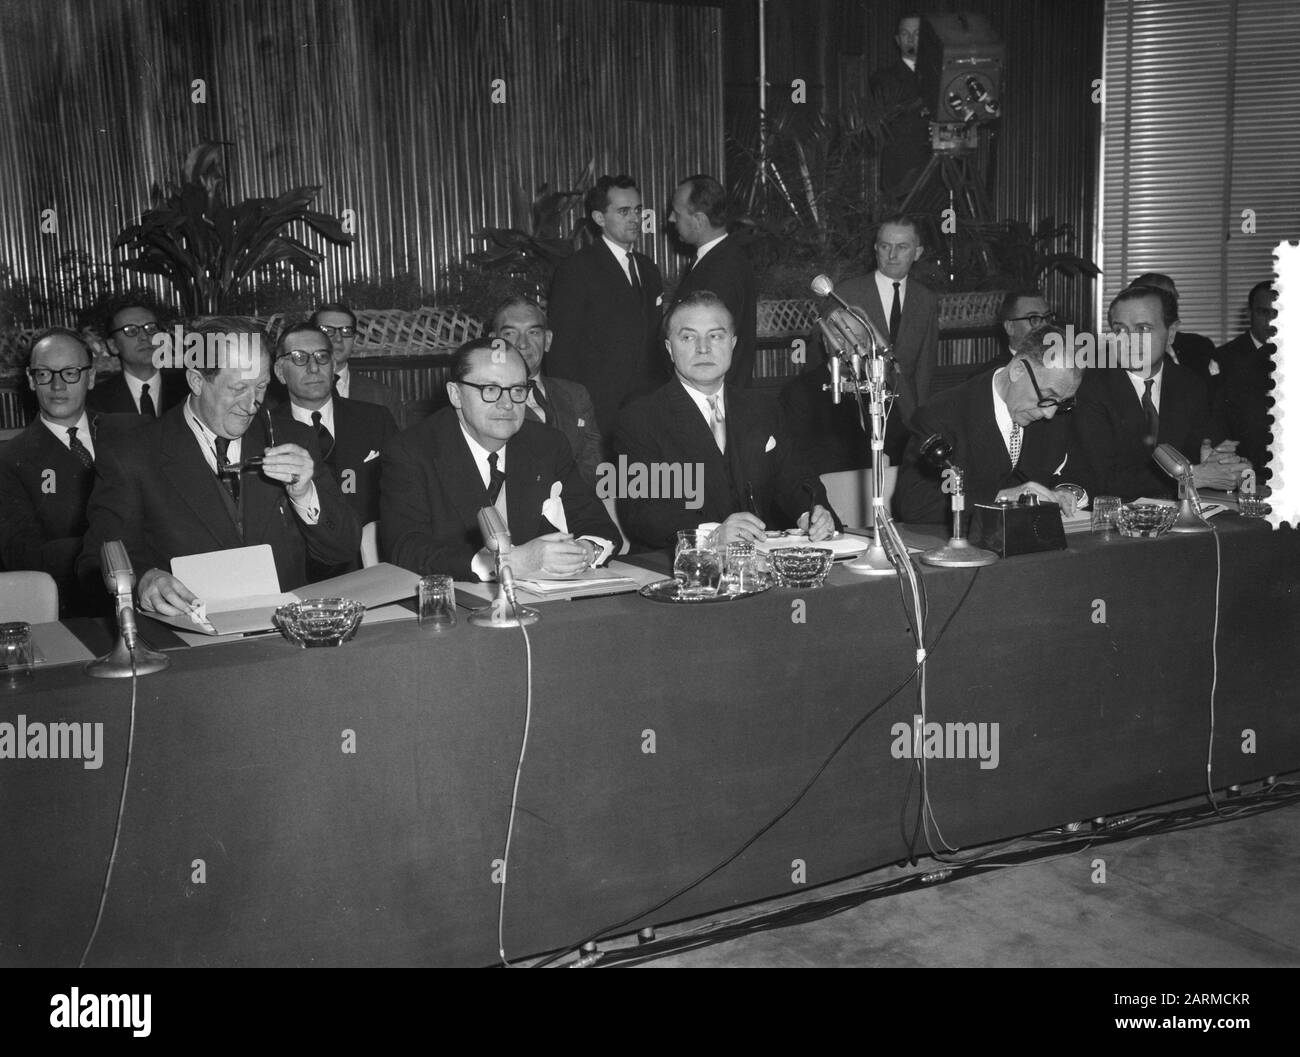 Round Table Conference In Brussels Congo Date 20 January 1960 Location Brussels Institution Name Round Table Conference Stock Photo Alamy